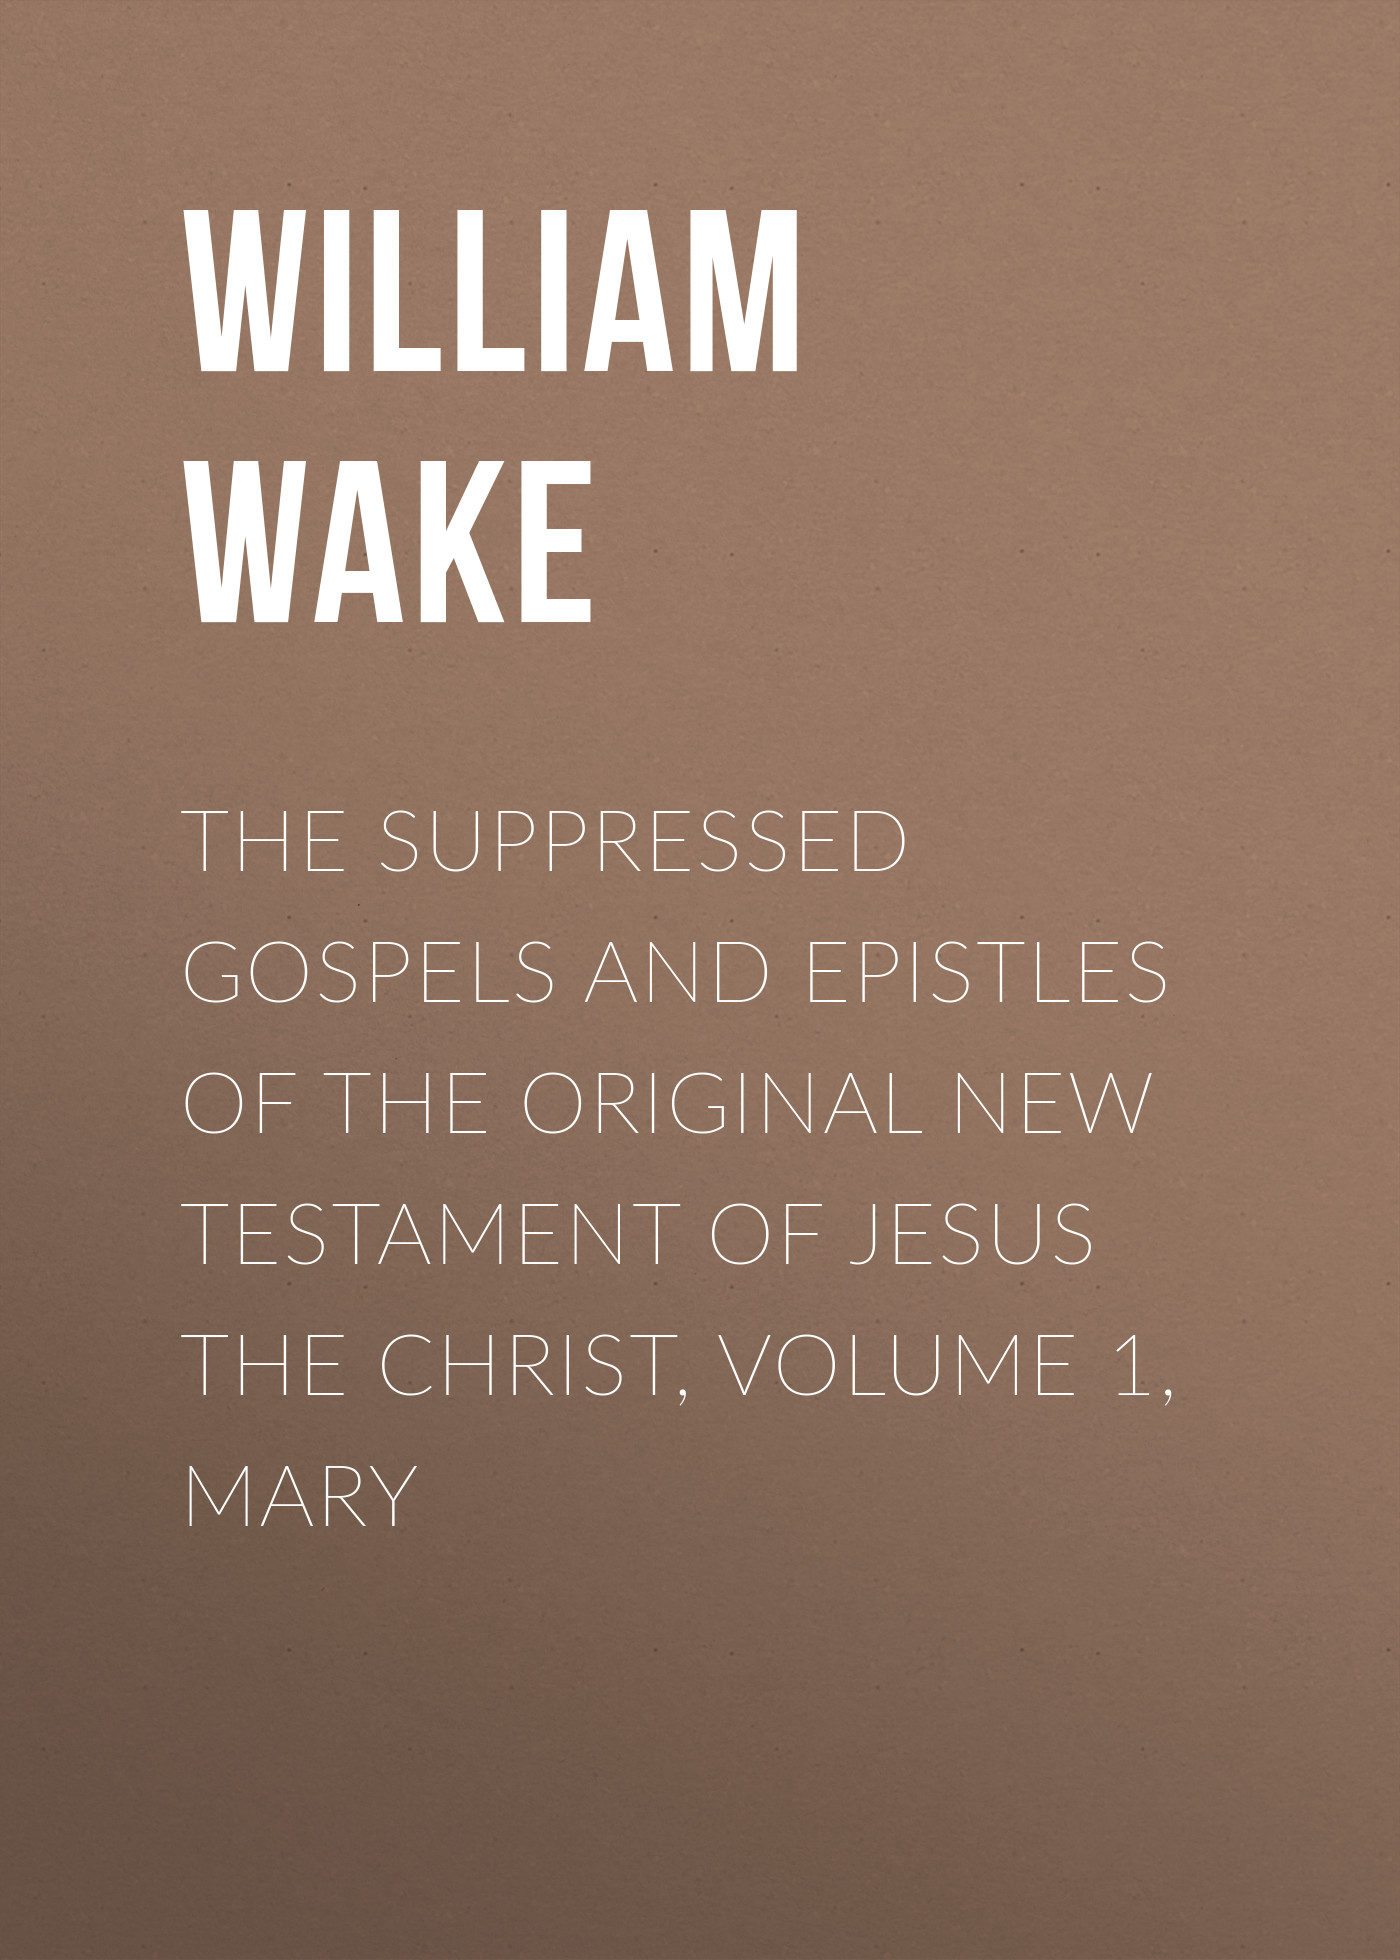 William Wake The suppressed Gospels and Epistles of the original New Testament of Jesus the Christ, Volume 1, Mary цены онлайн